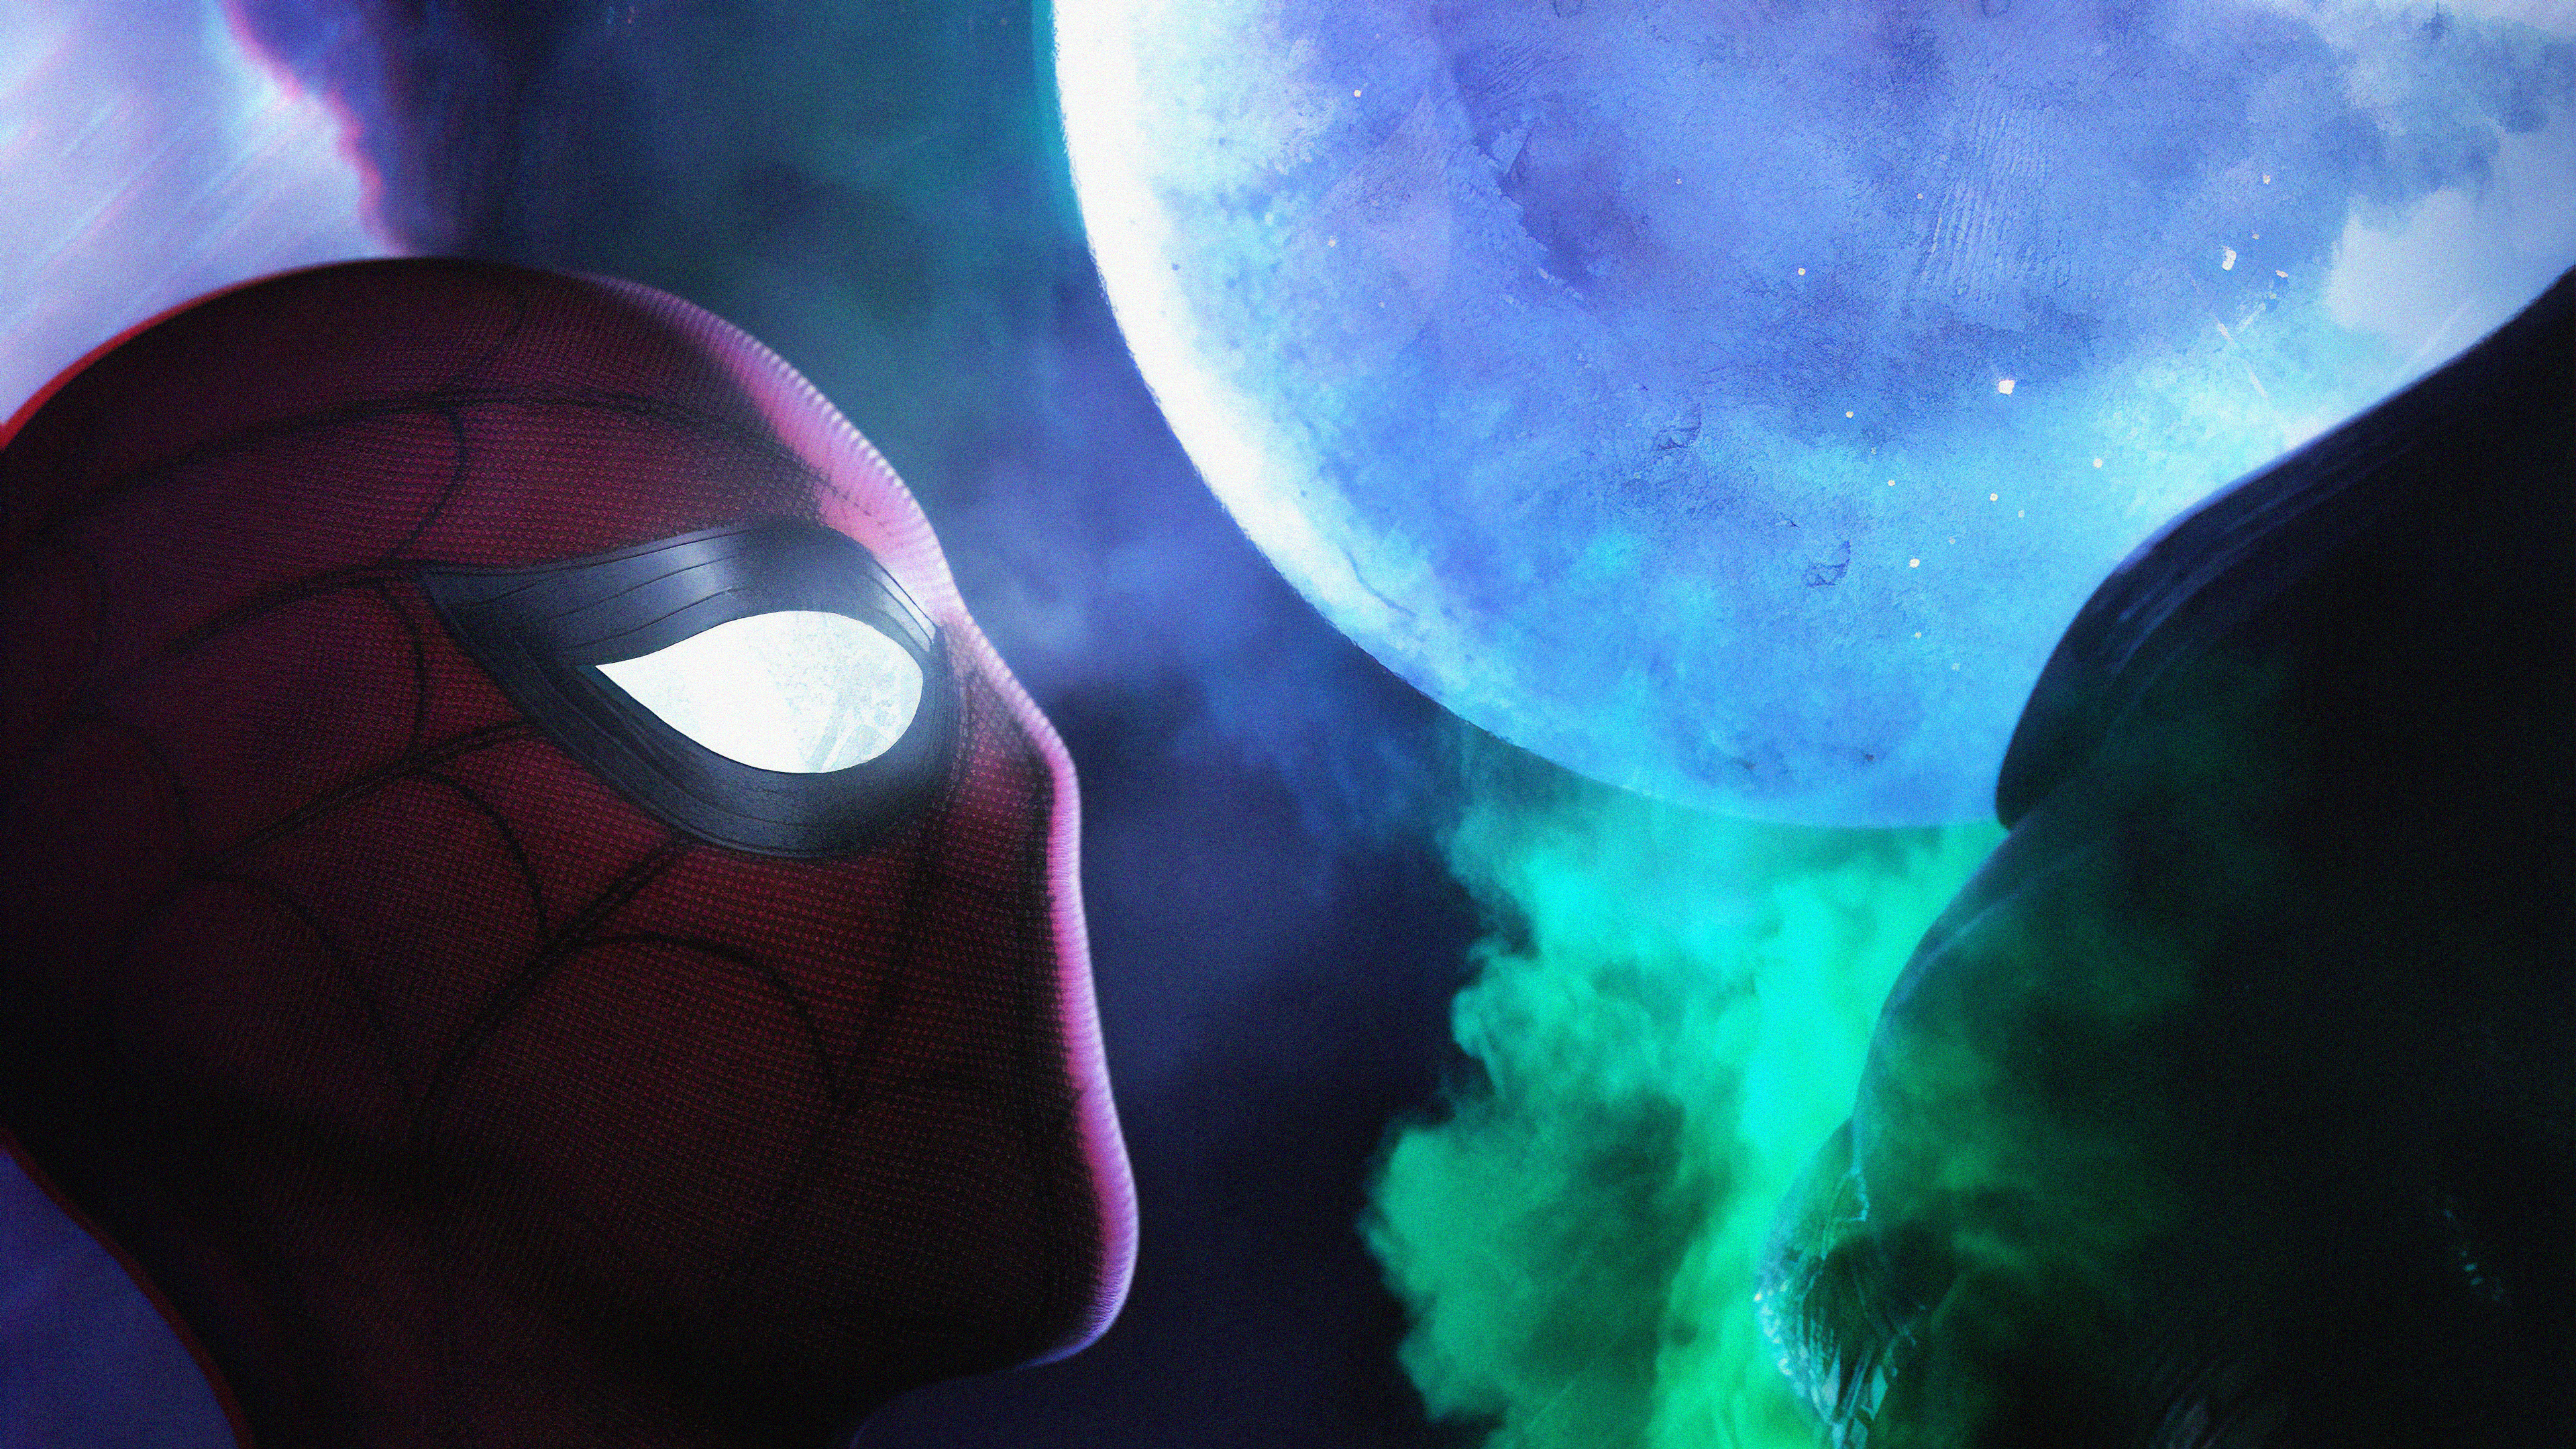 mysterio spiderman far from home 1563220386 - Mysterio SpiderMan Far From Home - superheroes wallpapers, spiderman far from home wallpapers, mysterio wallpapers, movies wallpapers, jake gyllenhaal wallpapers, hd-wallpapers, 5k wallpapers, 4k-wallpapers, 2019 movies wallpapers